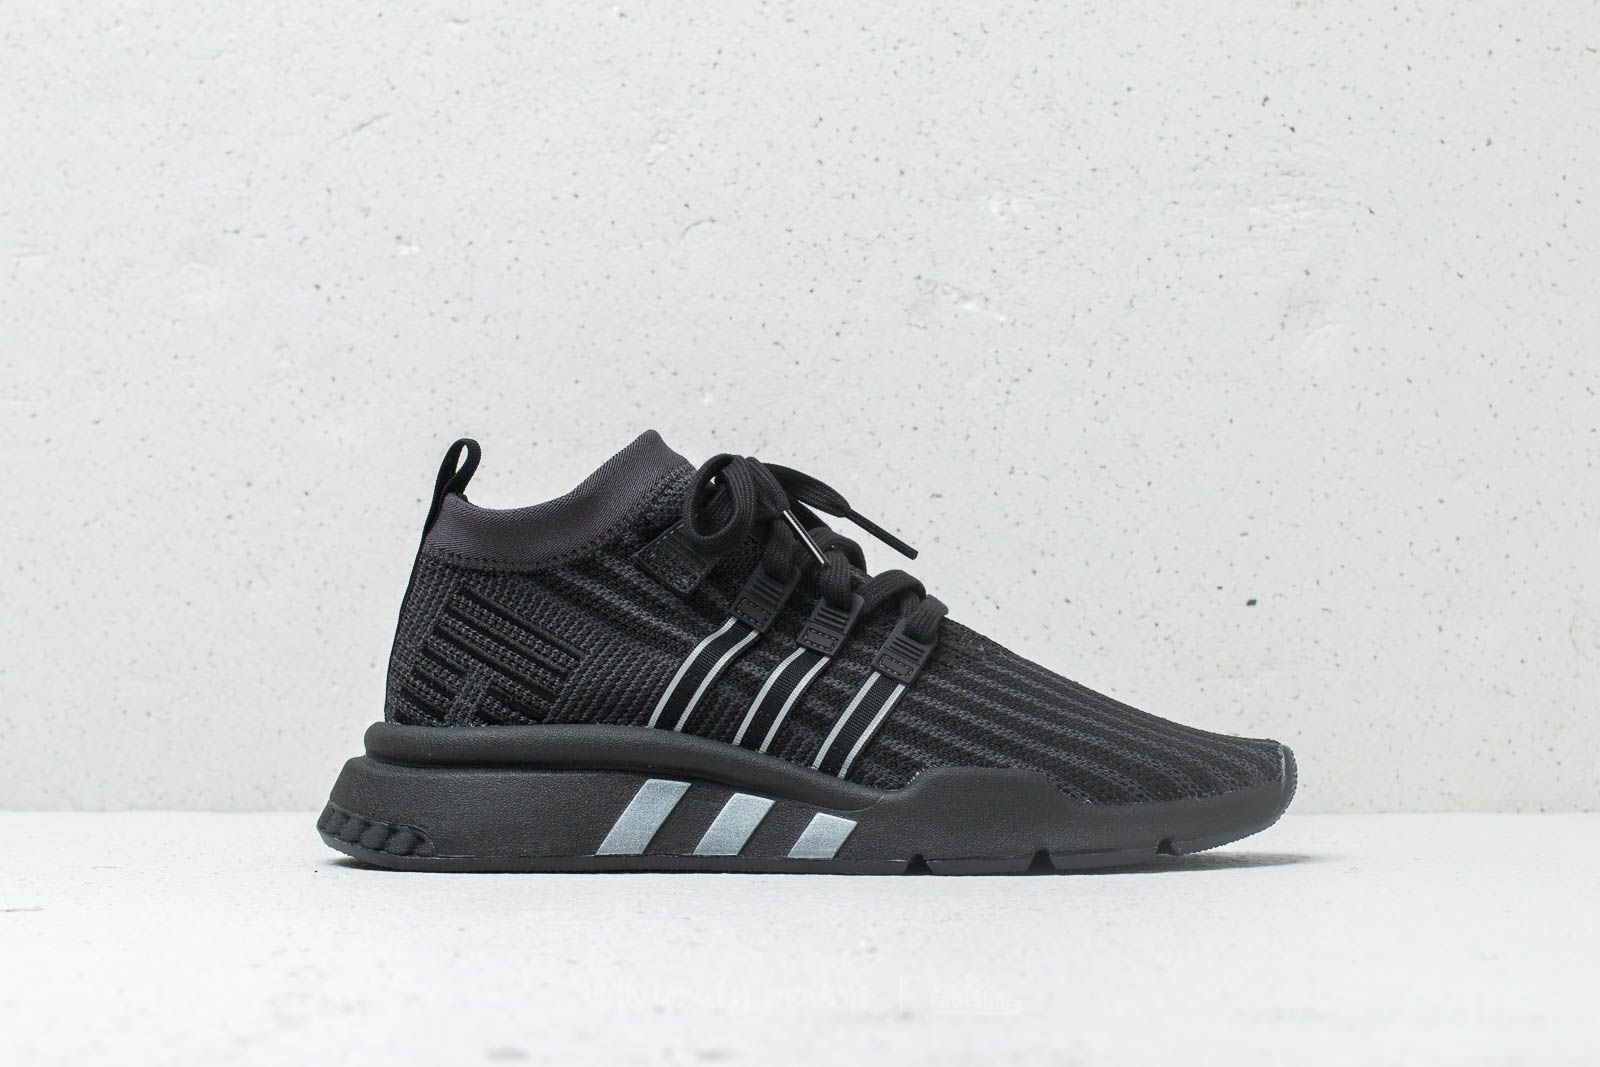 timeless design 9f7a4 33558 adidas EQT Support MID ADV Primeknit Core Black  Carbon  Solar Yellow at a  great